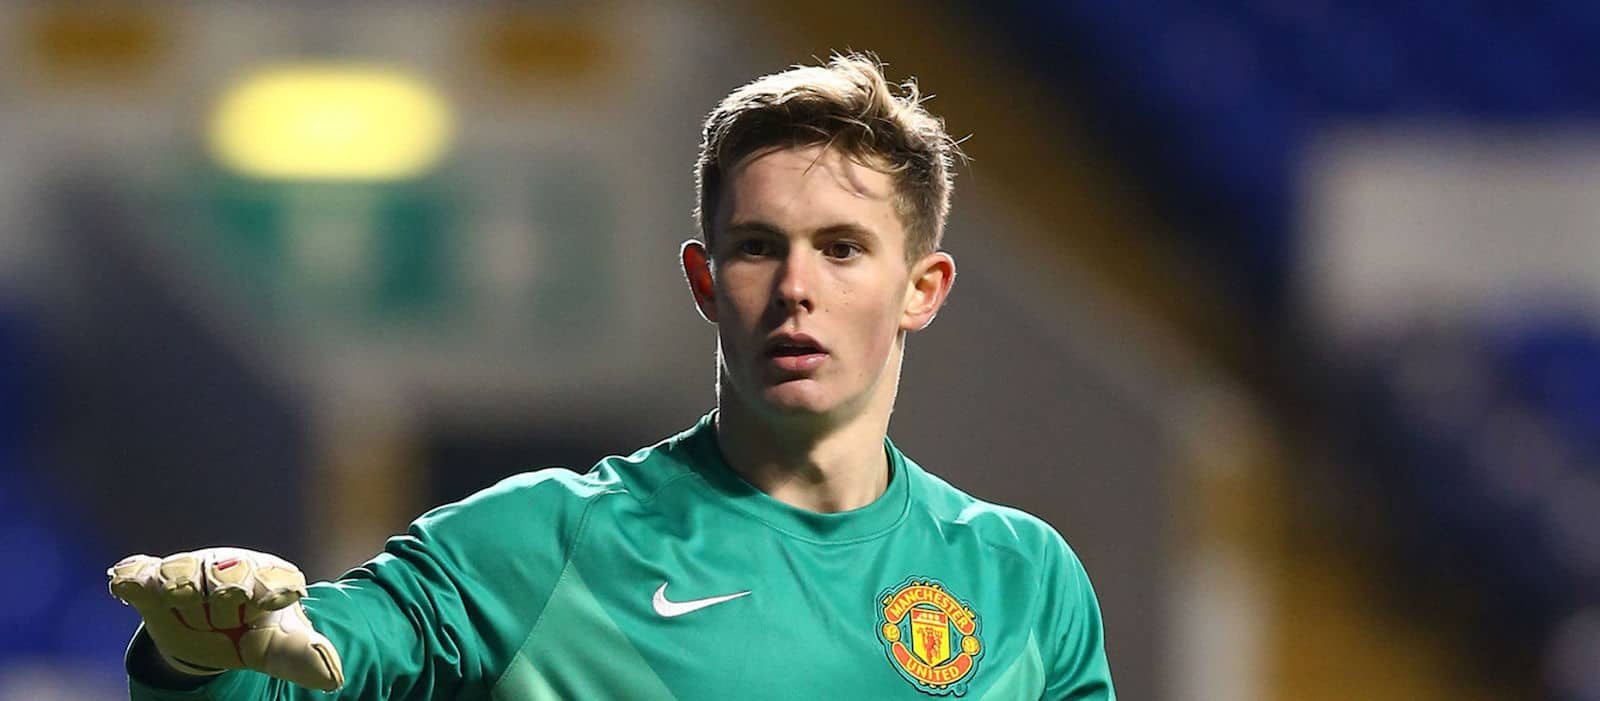 Dean Henderson wants £75k-a-week deal to stay at Manchester United